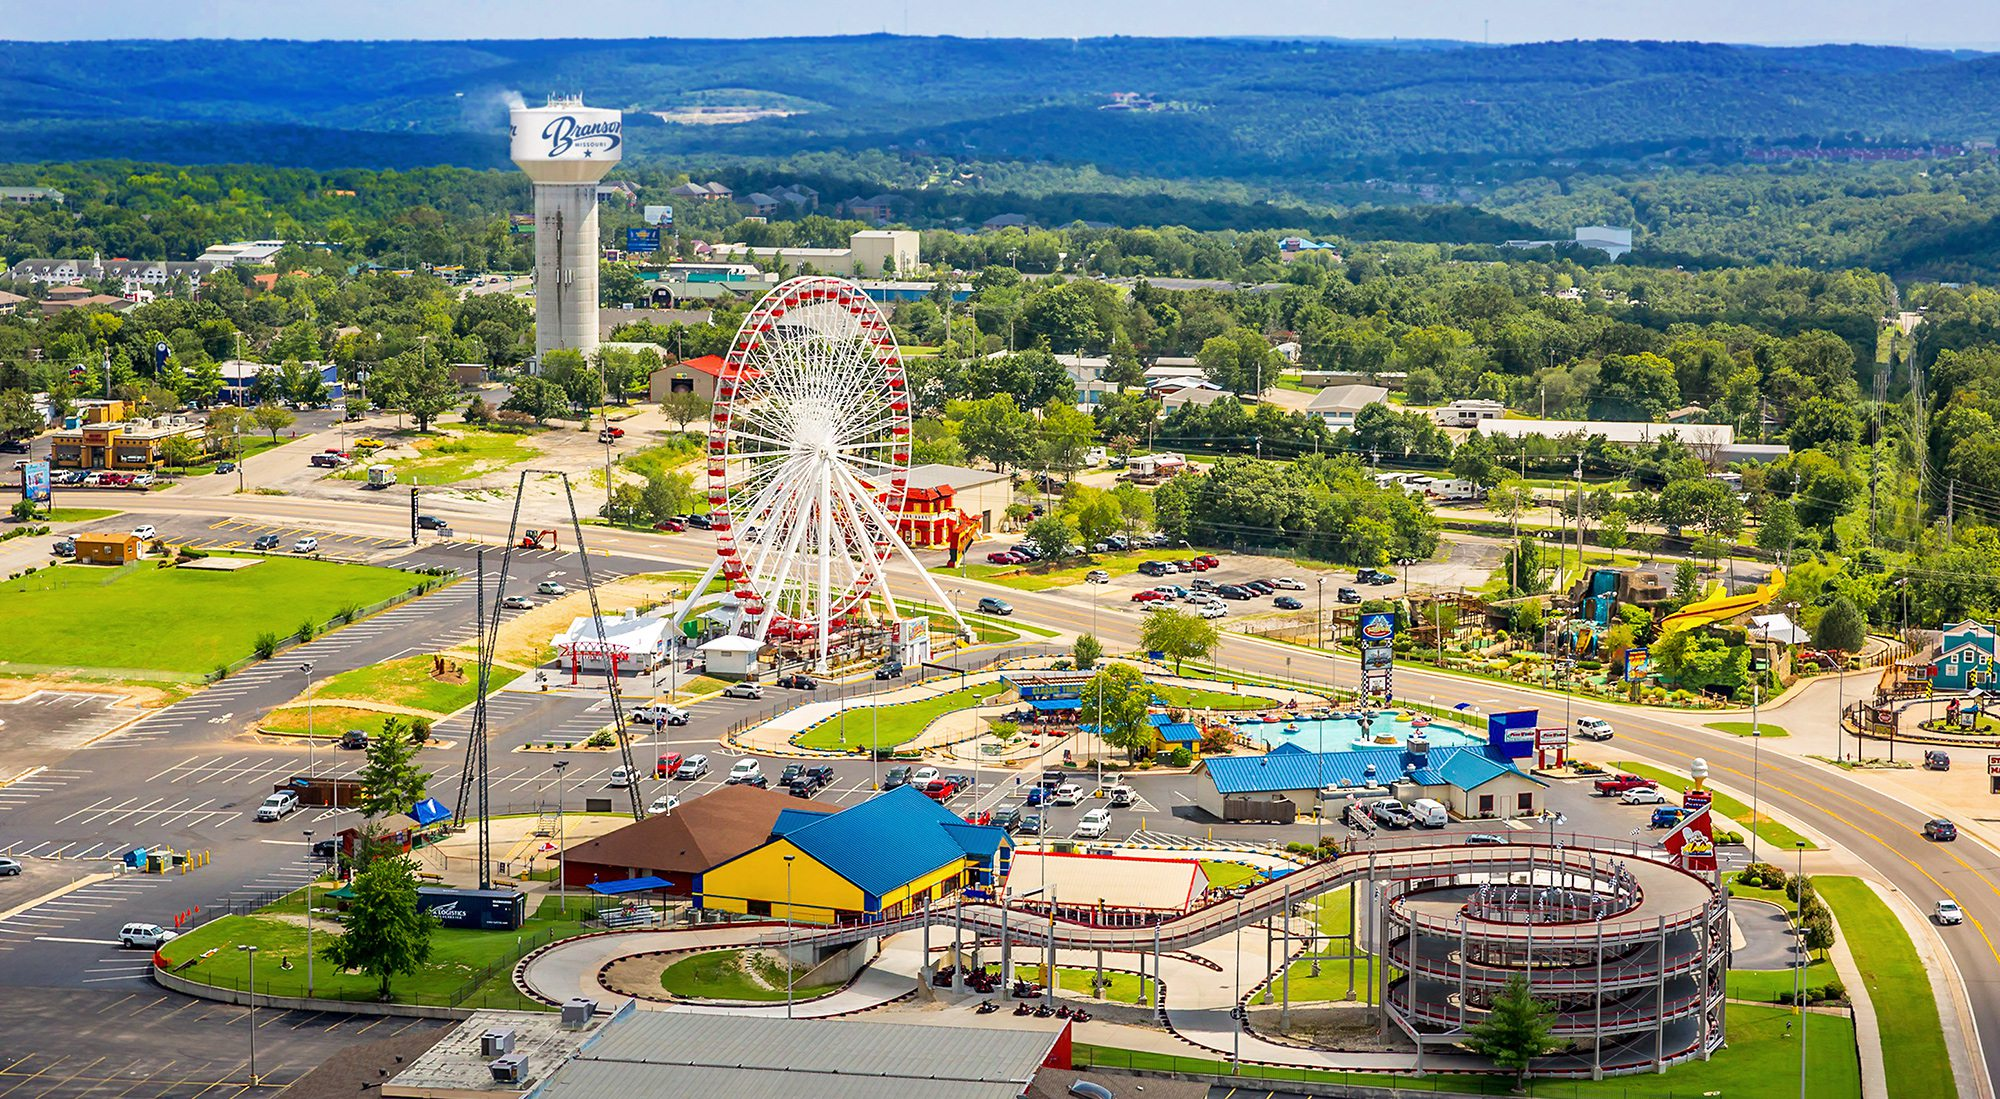 The Track Family Fun Park and the Branson, Missouri Skyline